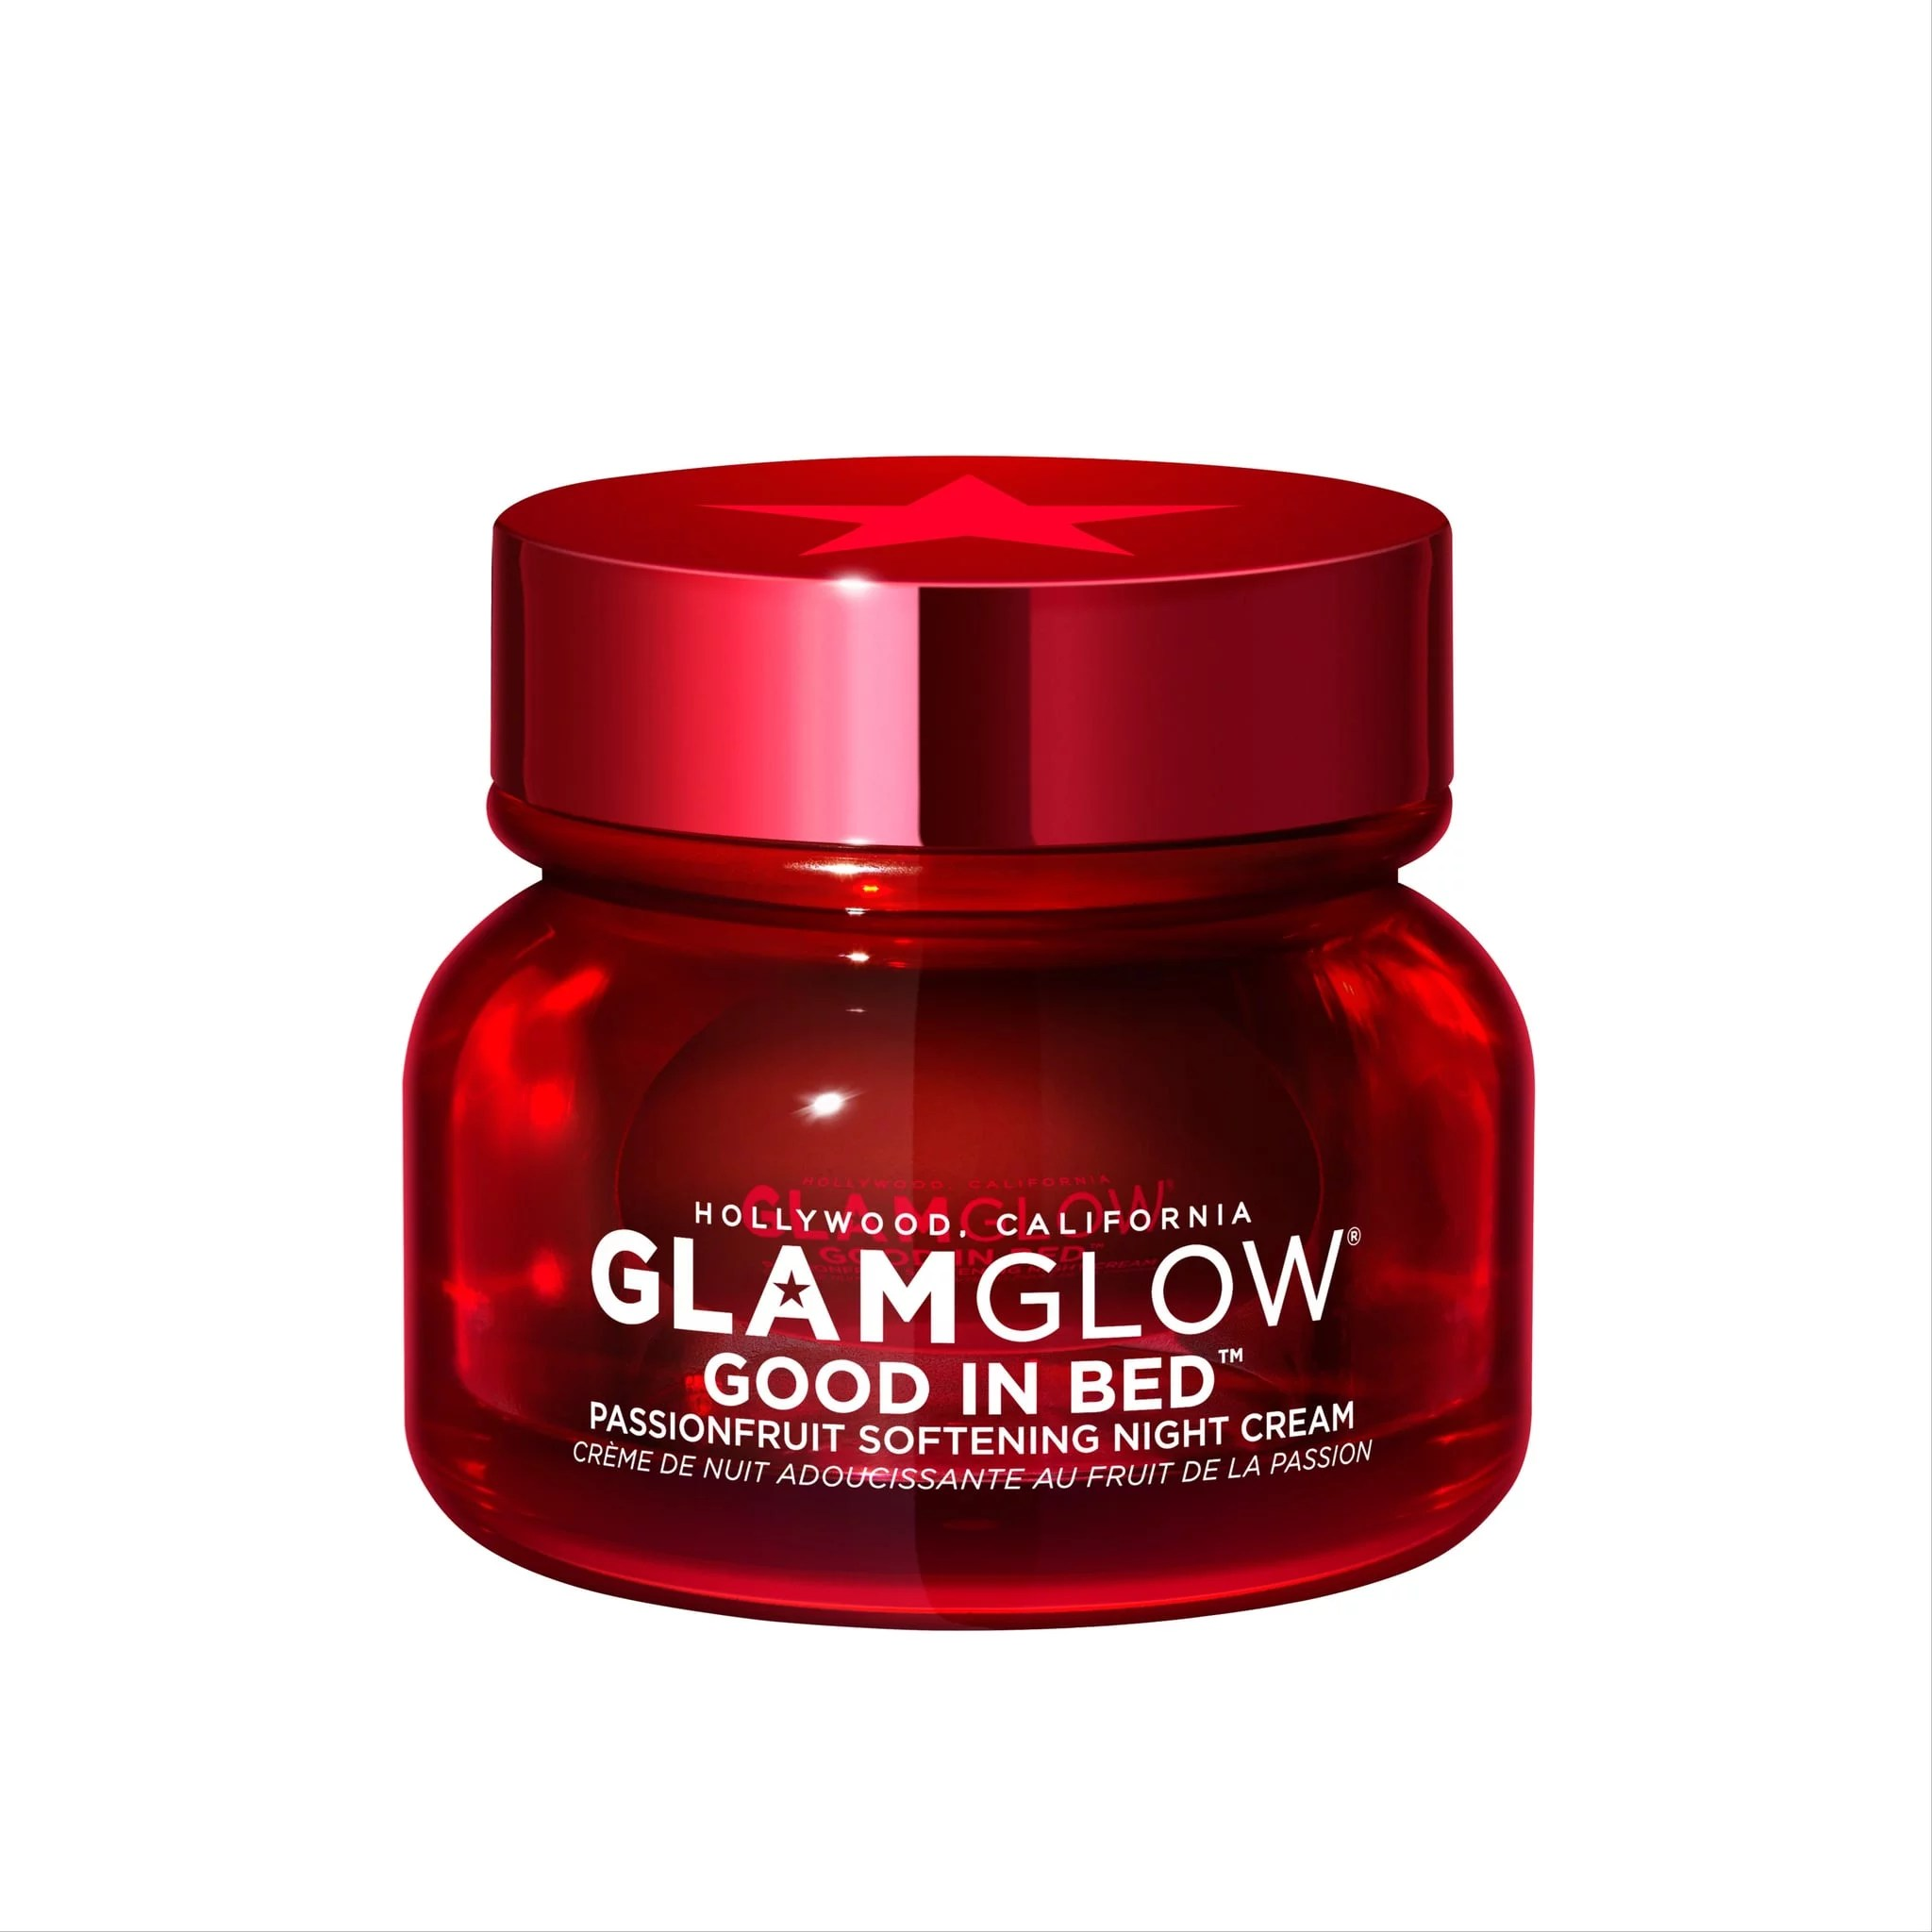 Bed Reviews Australia Glamglow Good In Bed Skin Softening Cream Review